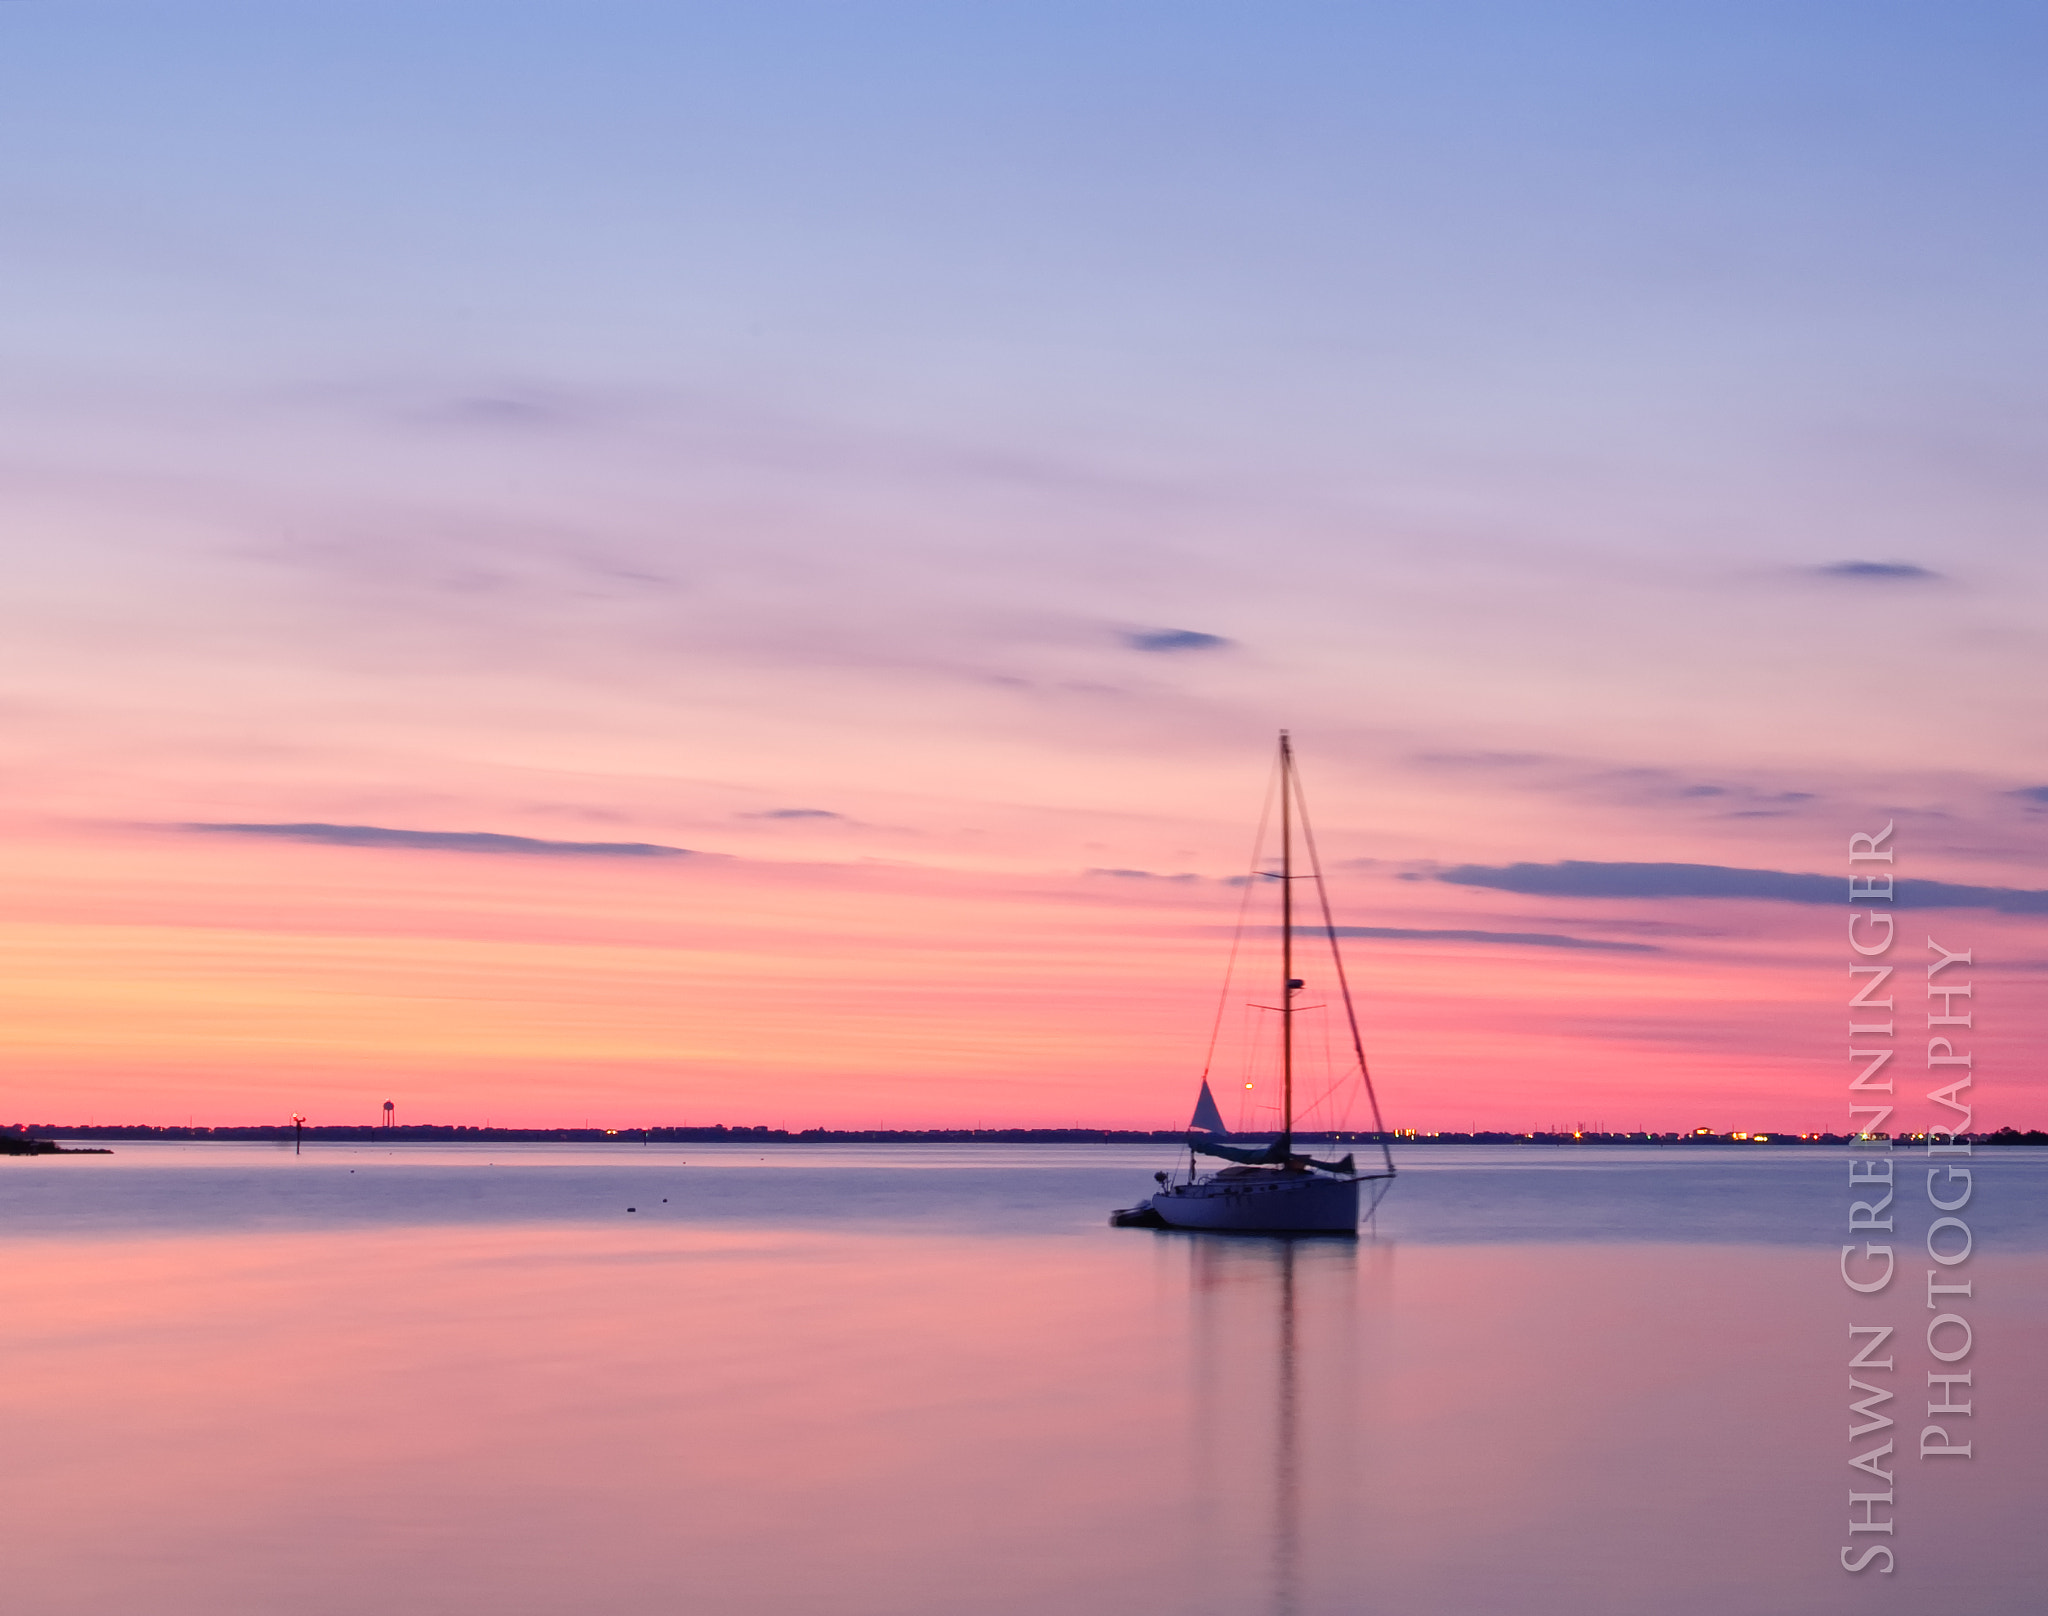 Photograph Shallowbag Bay by Shawn Grenninger on 500px